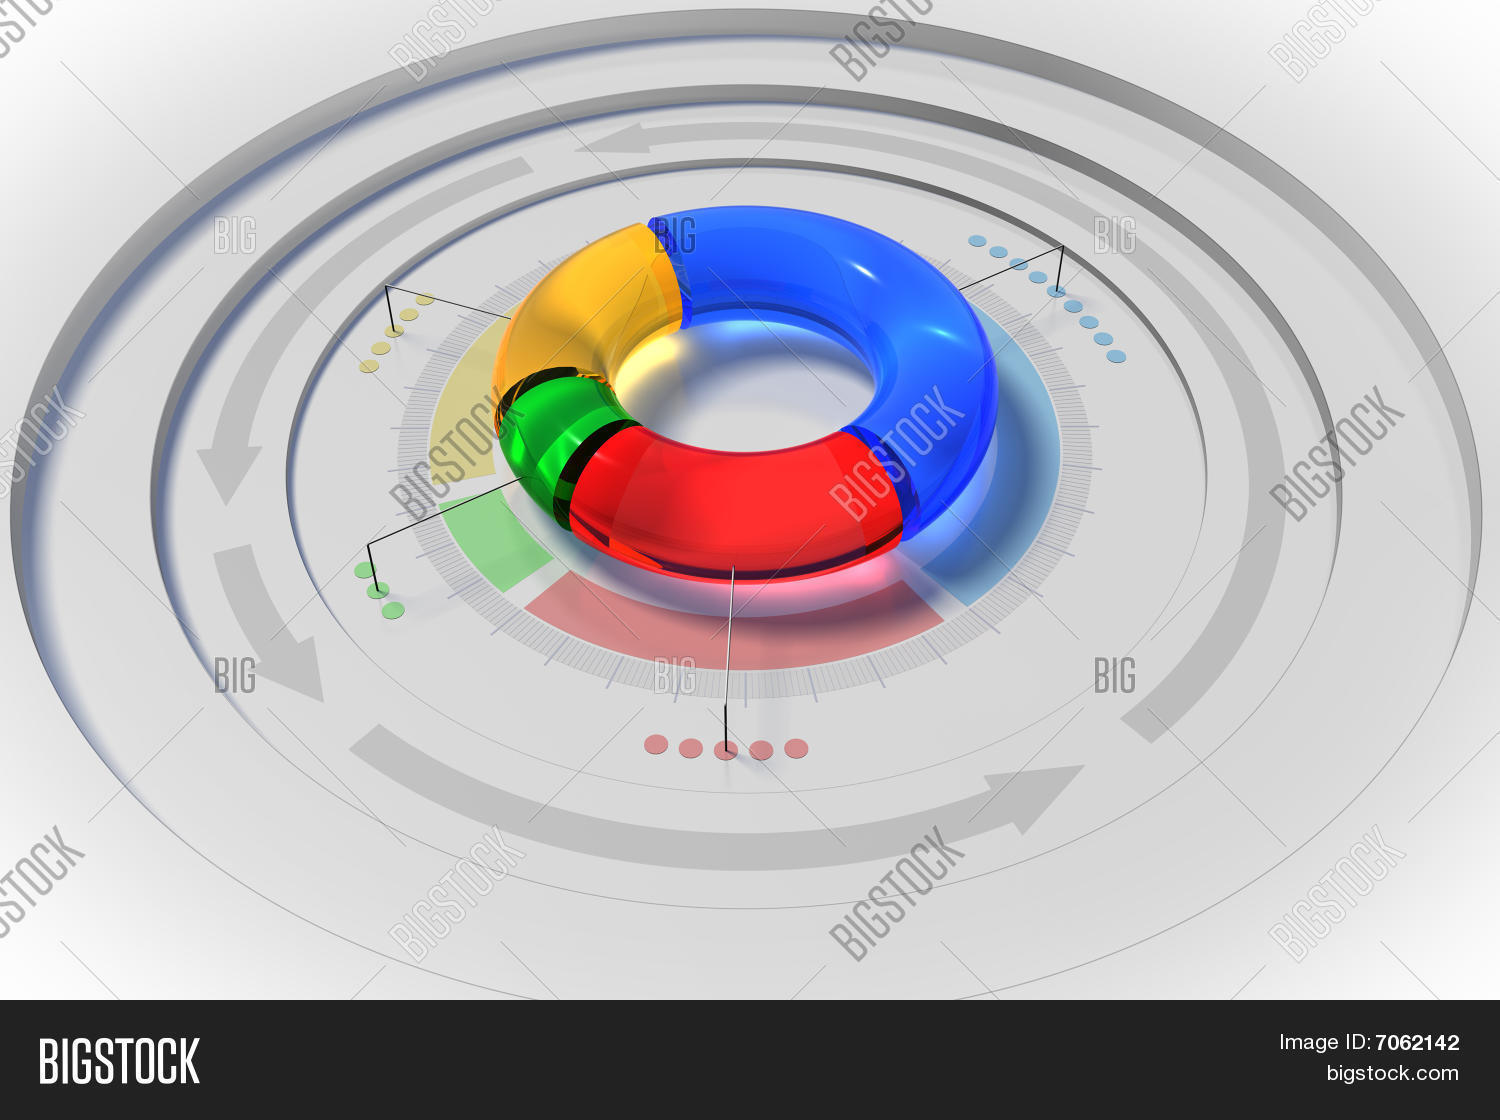 3d Pie Chart Image Photo Free Trial Bigstock